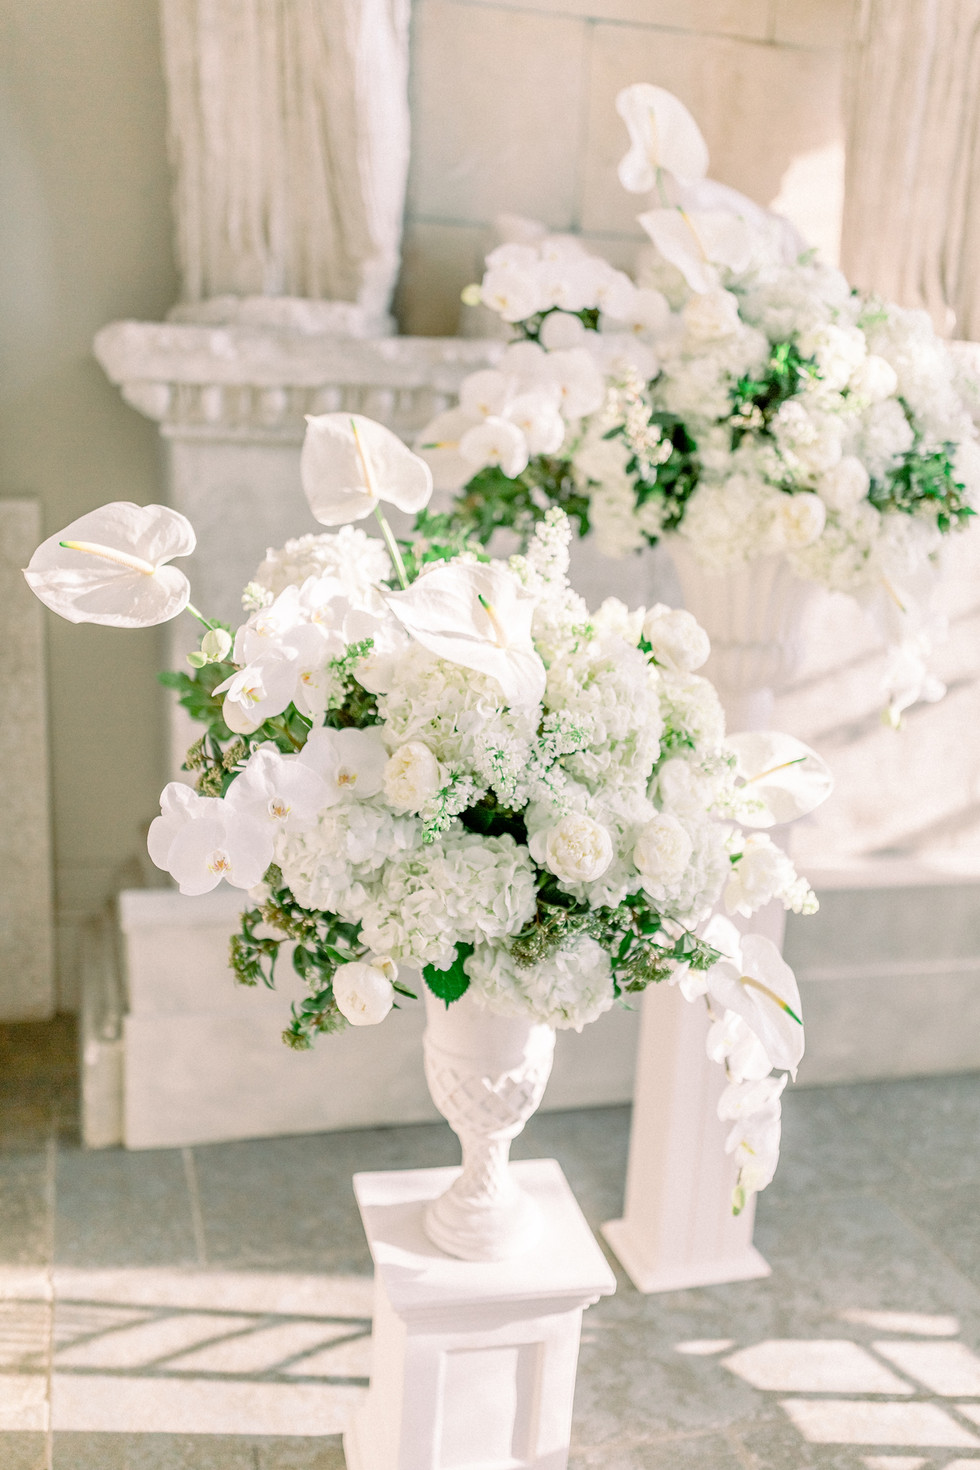 A WHITE WINTER WEDDING - AYNHOE PARK WEDDING FLORIST